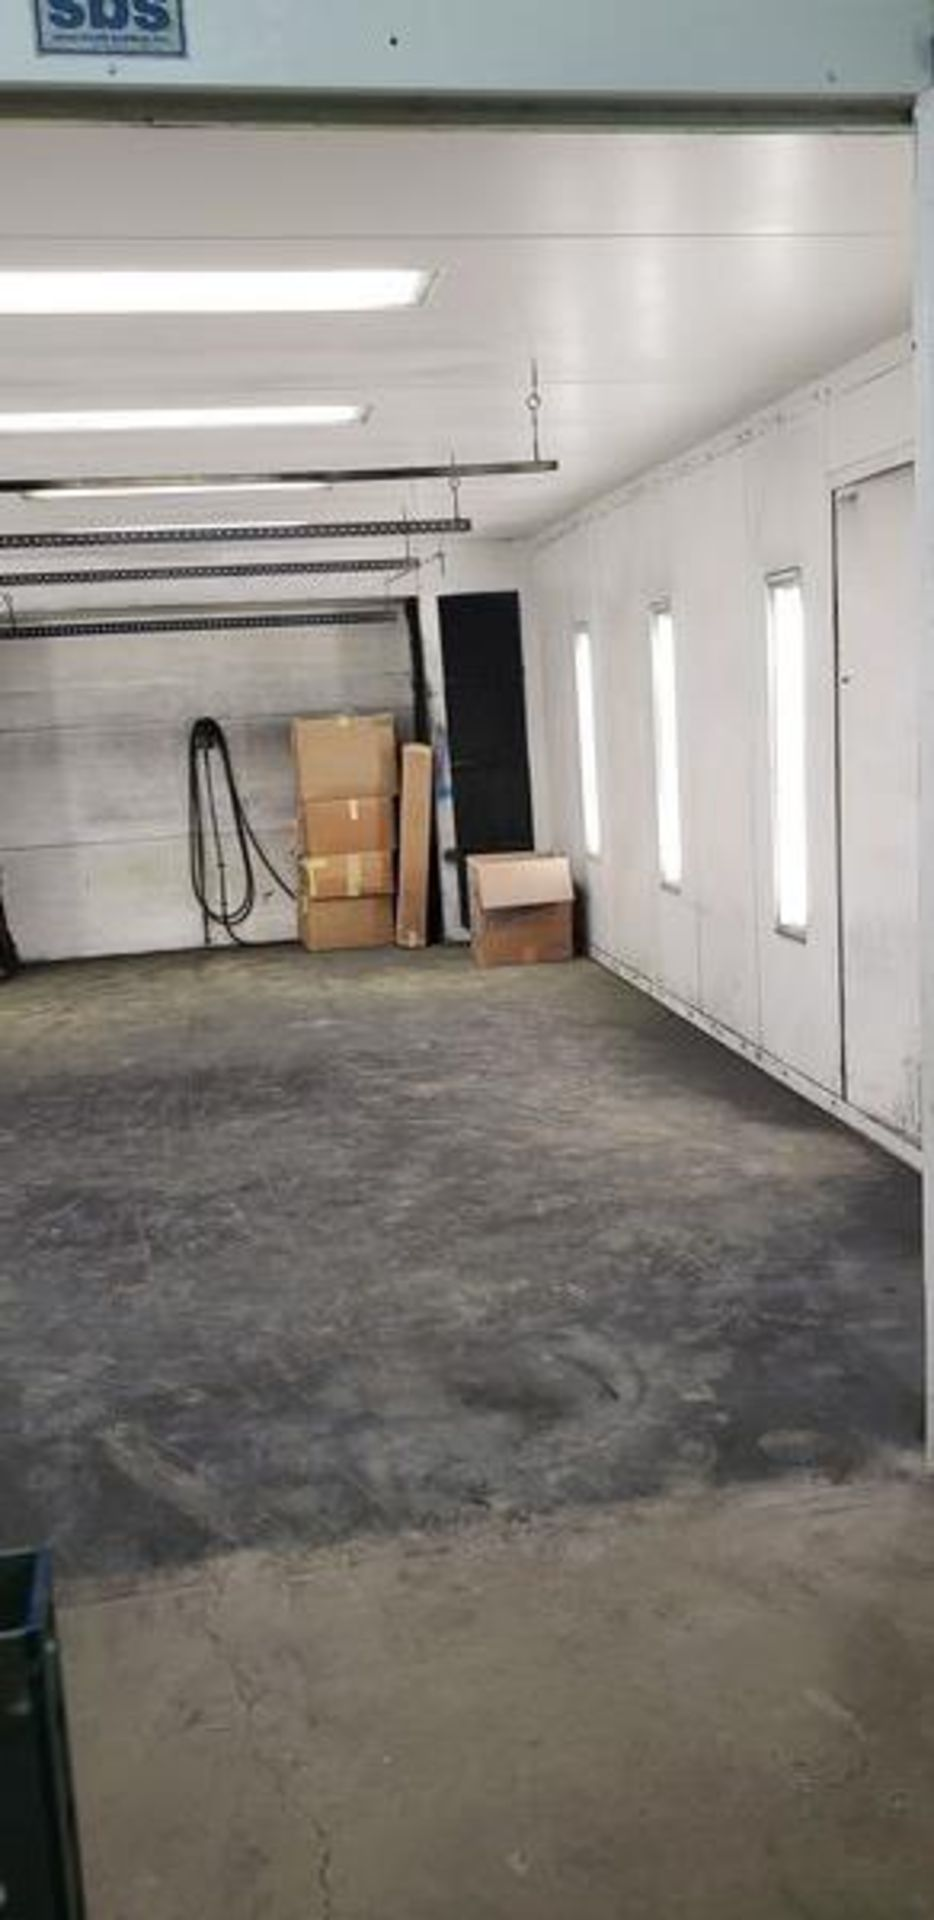 """SBS SPRAYBOOTH SYSTEM WITH LIGHTS AND EXHAUST - 14'2"""" X 24'9"""" X 8'6"""" - BUYER MUST CAP THE ROOF - Image 6 of 10"""